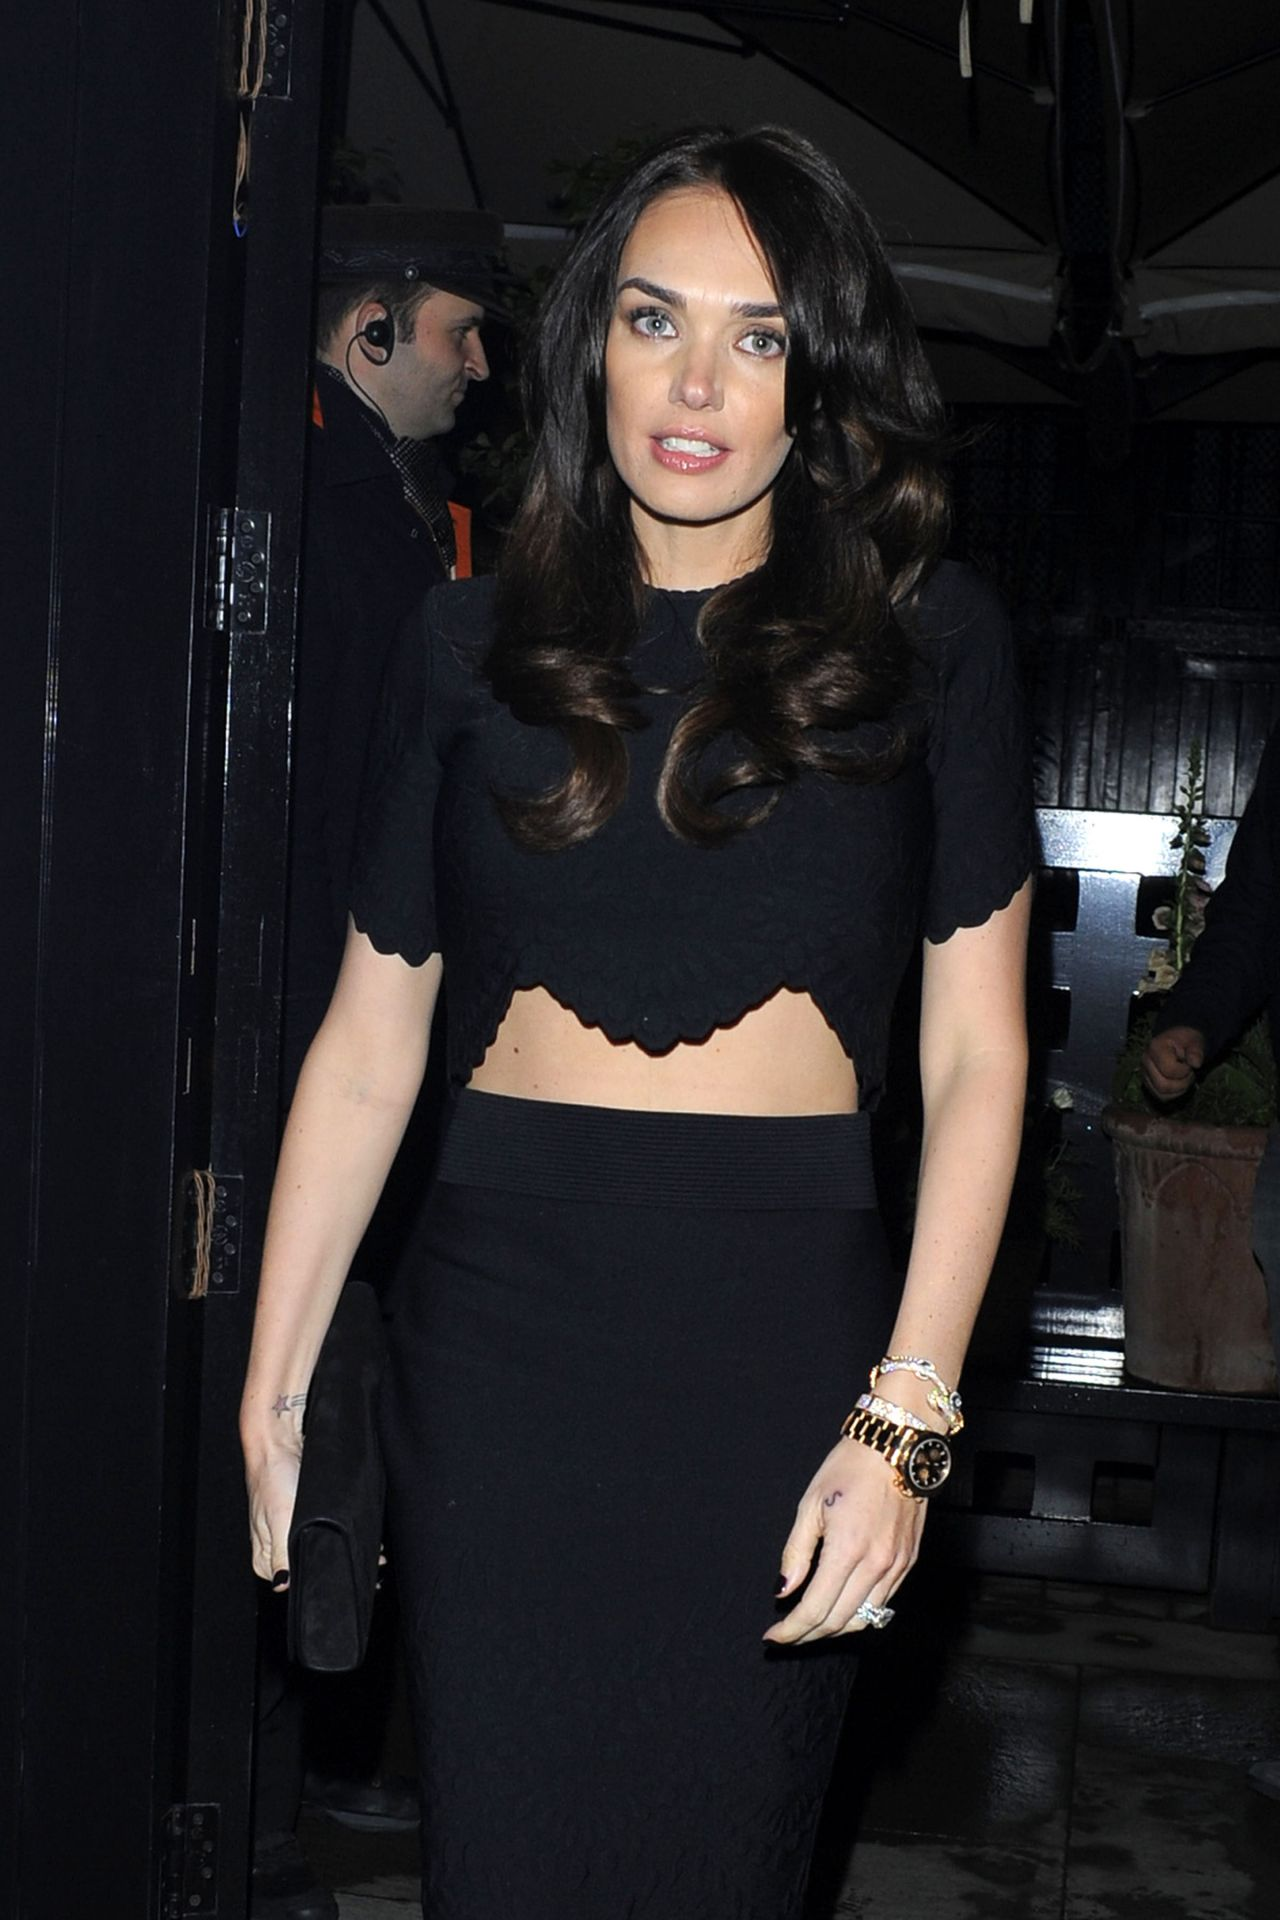 Tamara Ecclestone Night Out Style - Outside the Firehouse in London - May 2014